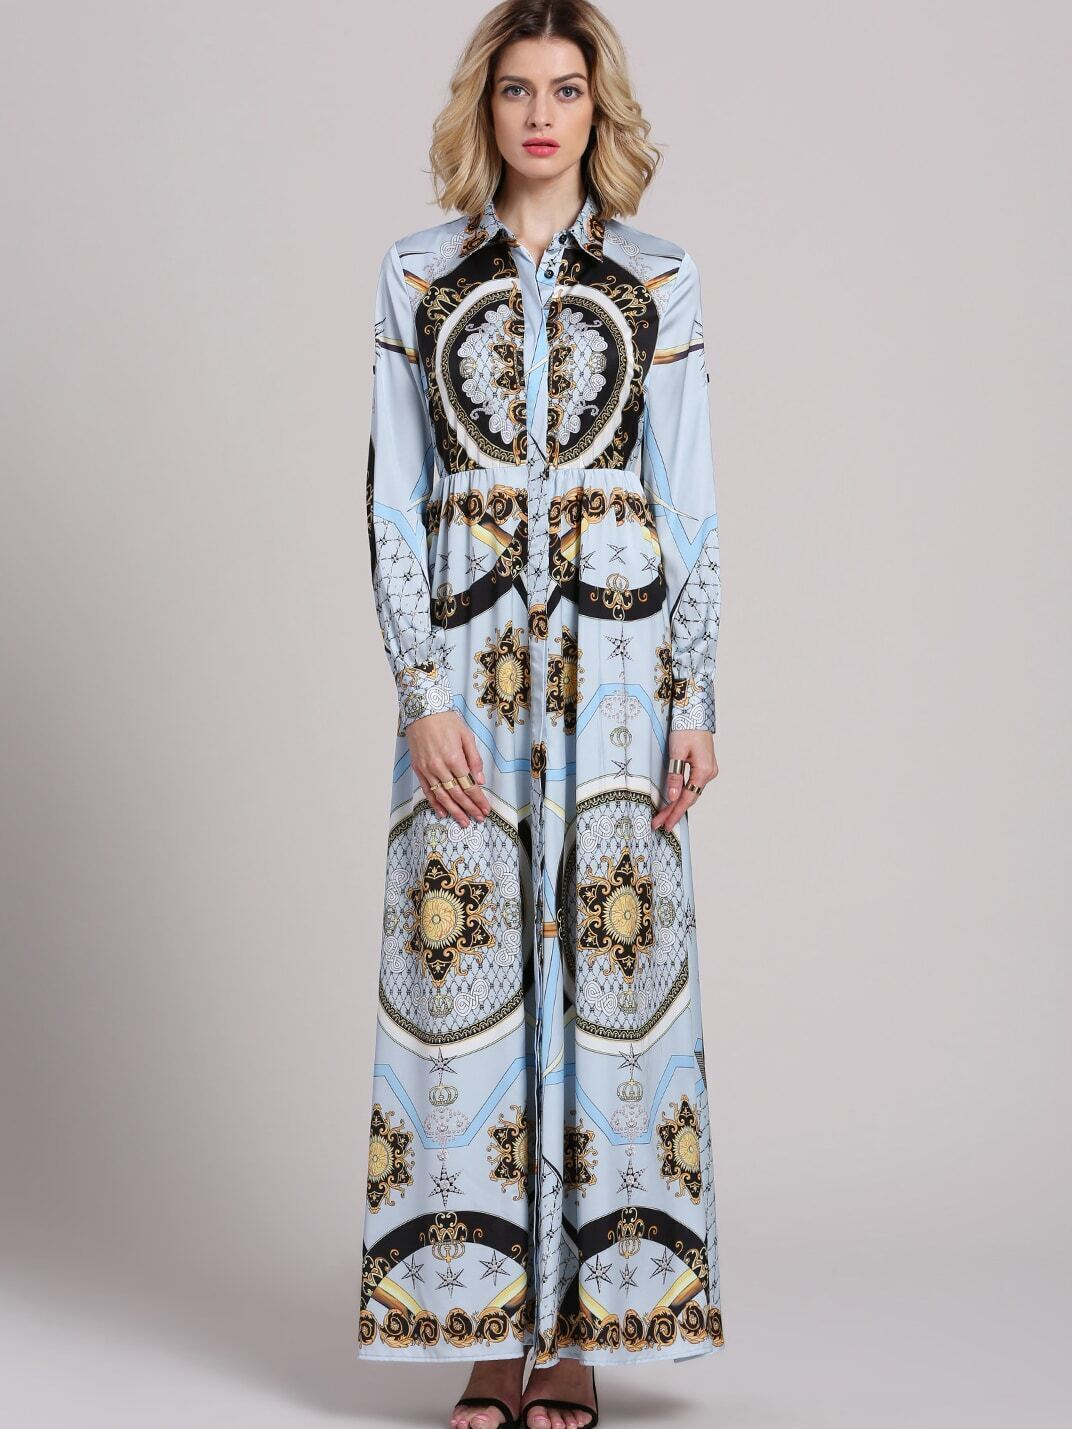 Blue Lapel Long Sleeve Vintage Print Dress